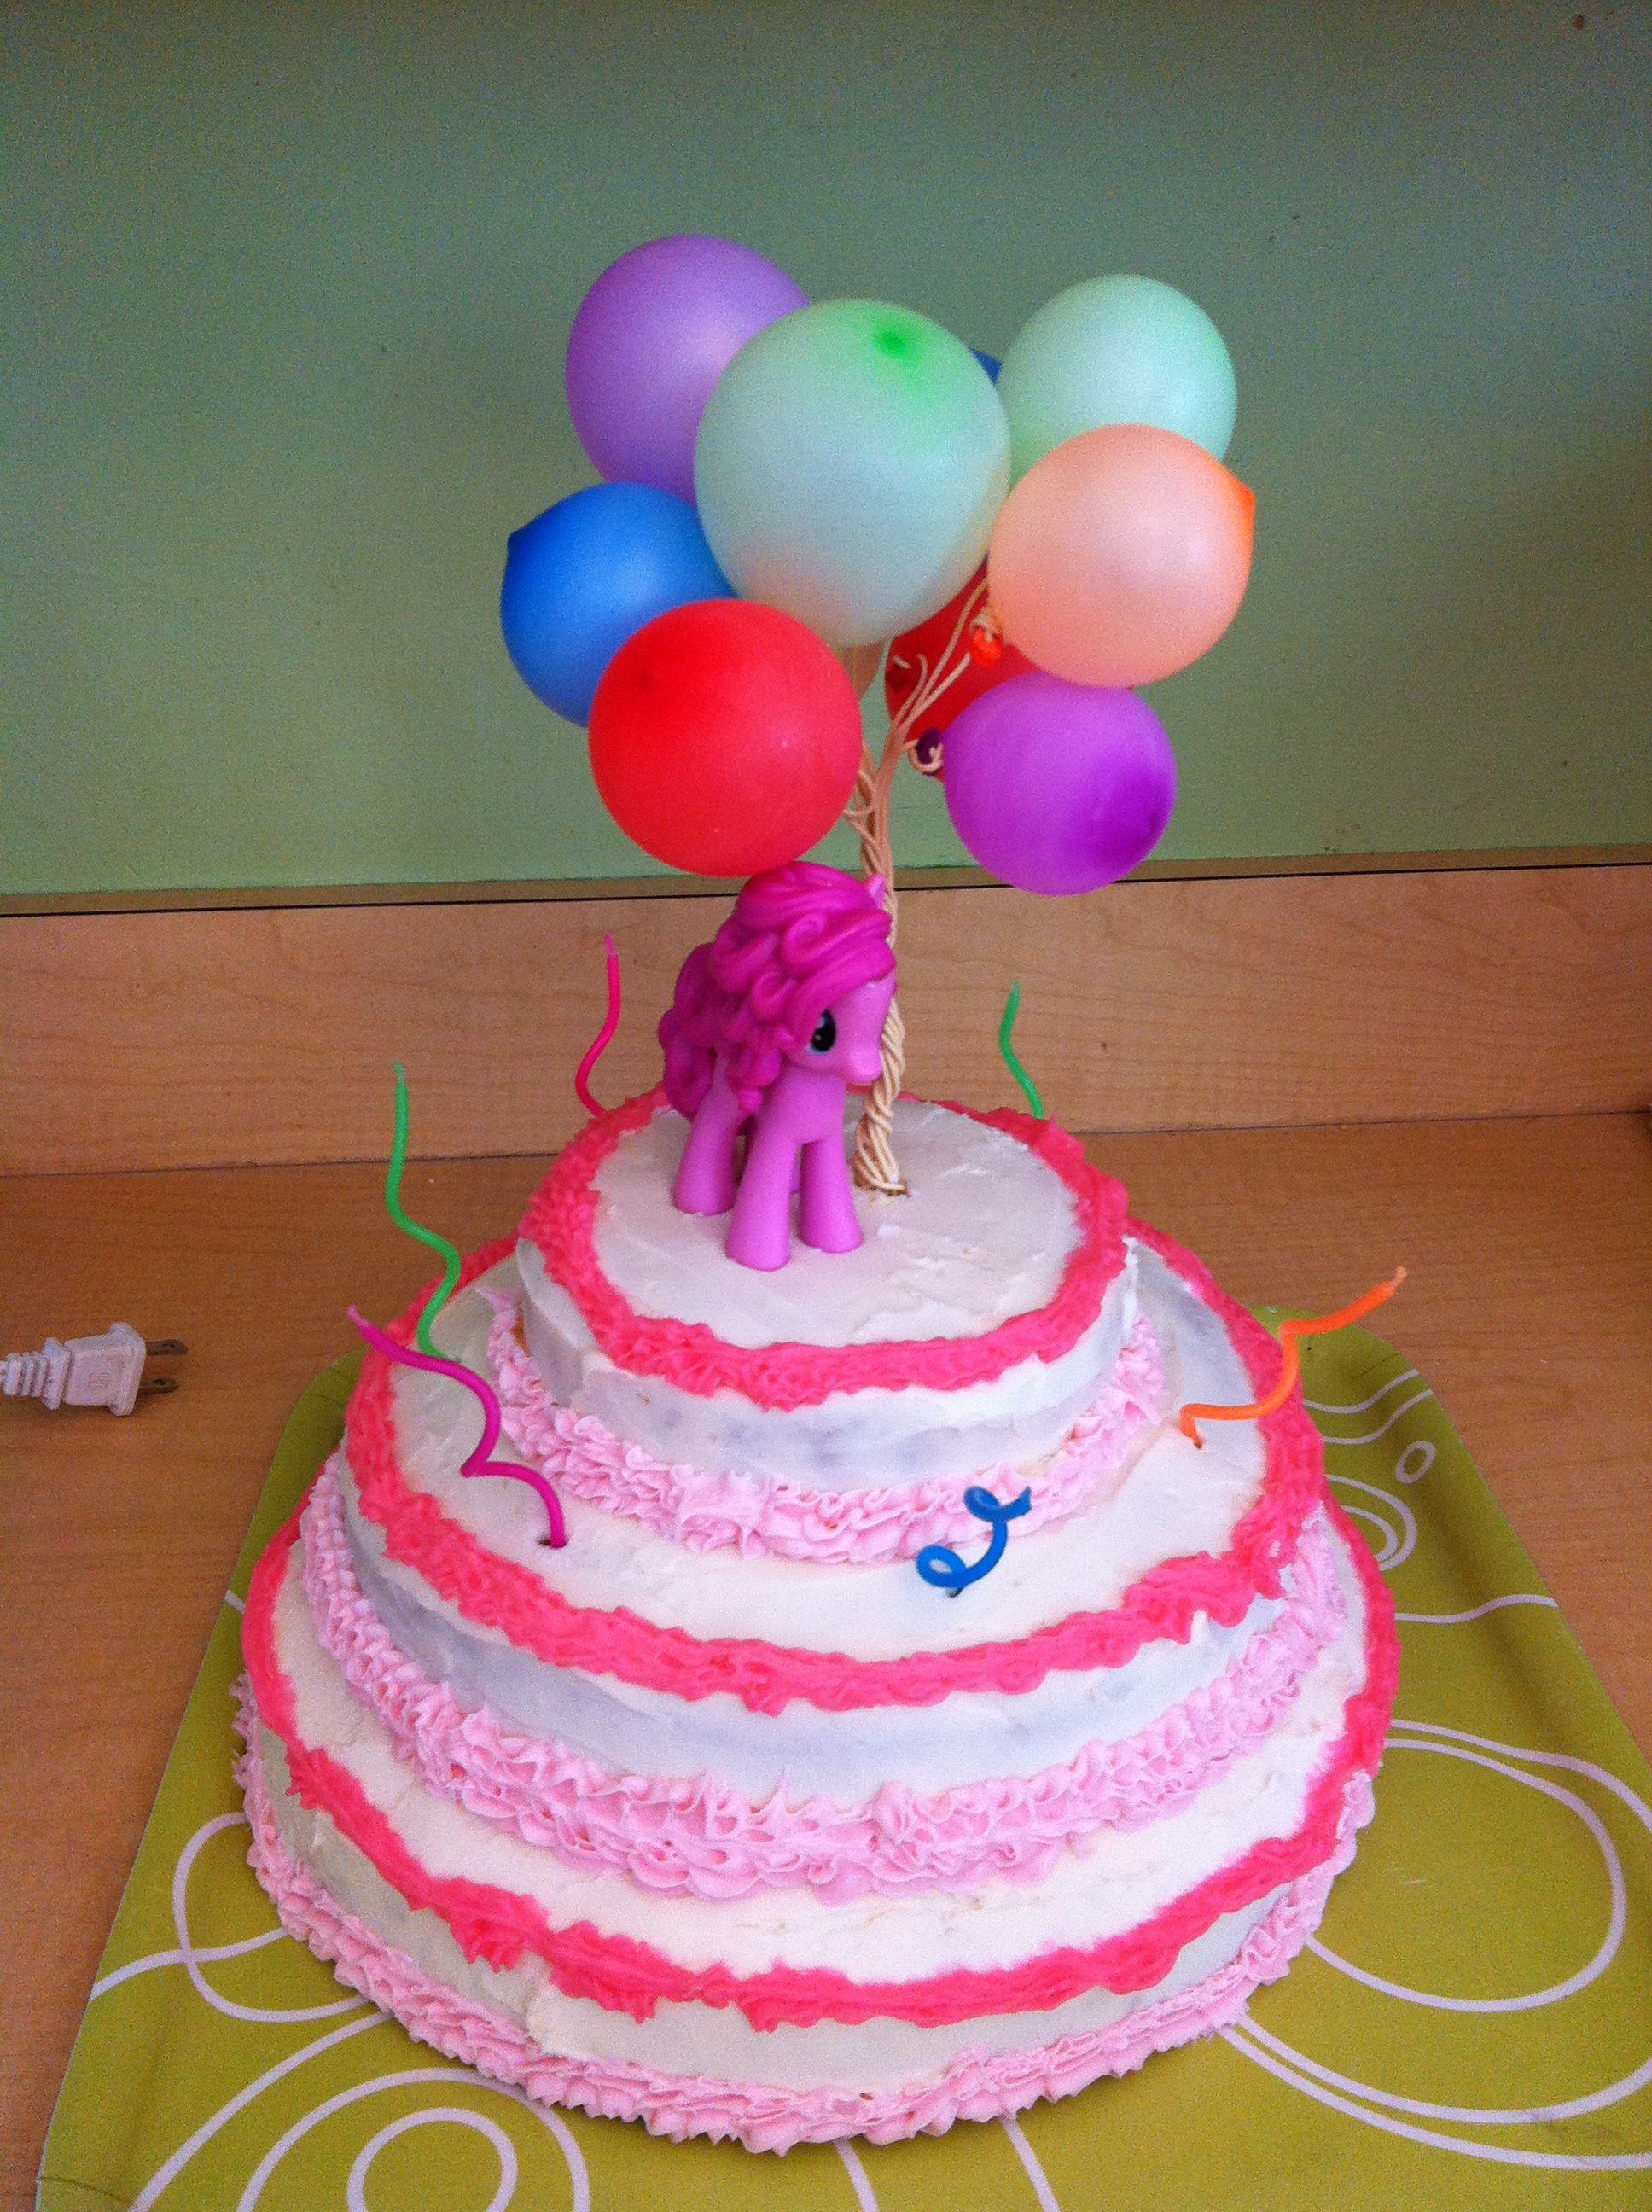 My Little Pony Quot Pinkie Pie Quot Birthday Cake Real Balloons